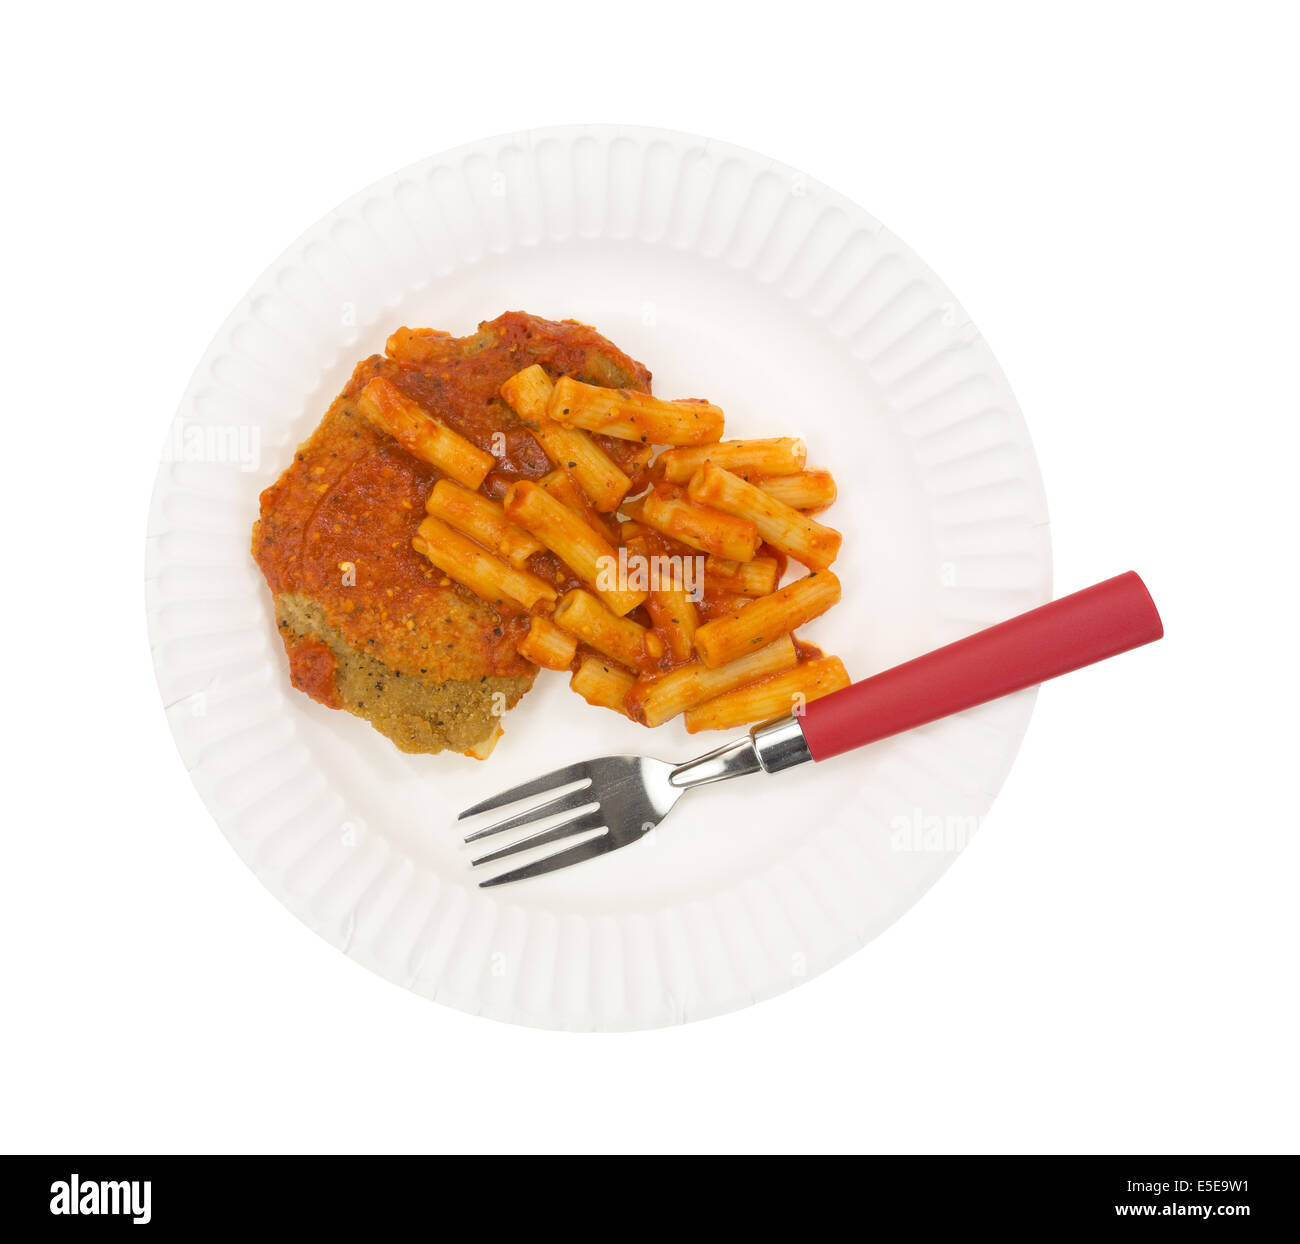 A TV dinner of breaded chicken with pasta in tomato sauce on a paper plate with a fork on a white background. - Stock Image